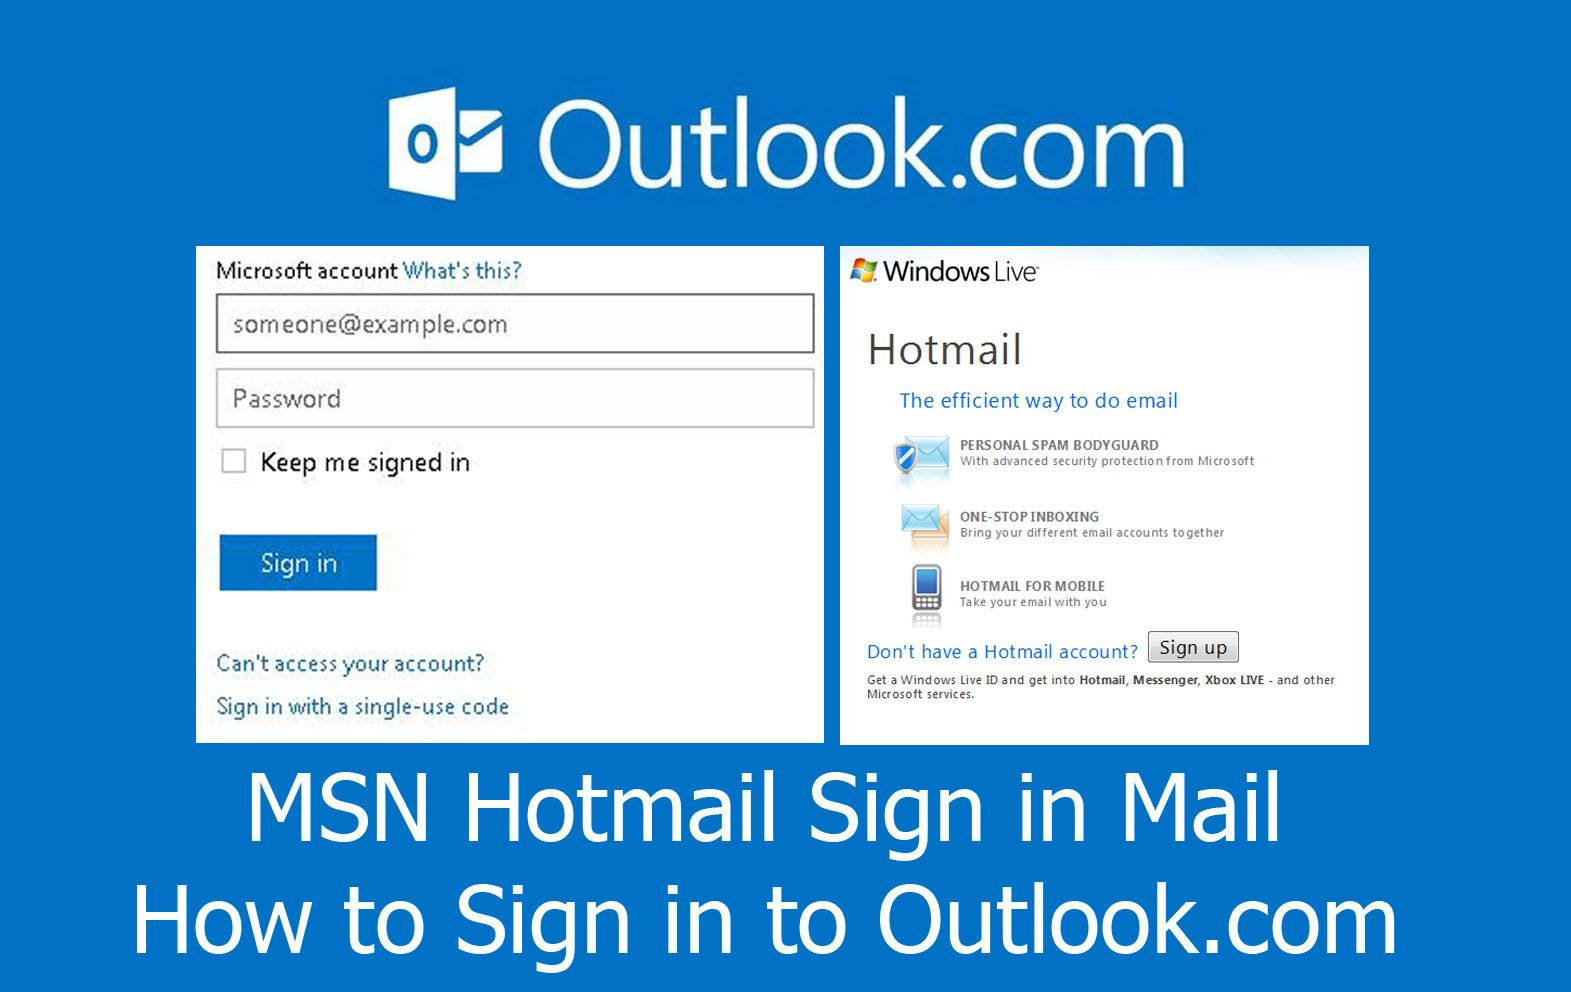 Customer Support: Detailed Guide on Adding Hotmail and Live